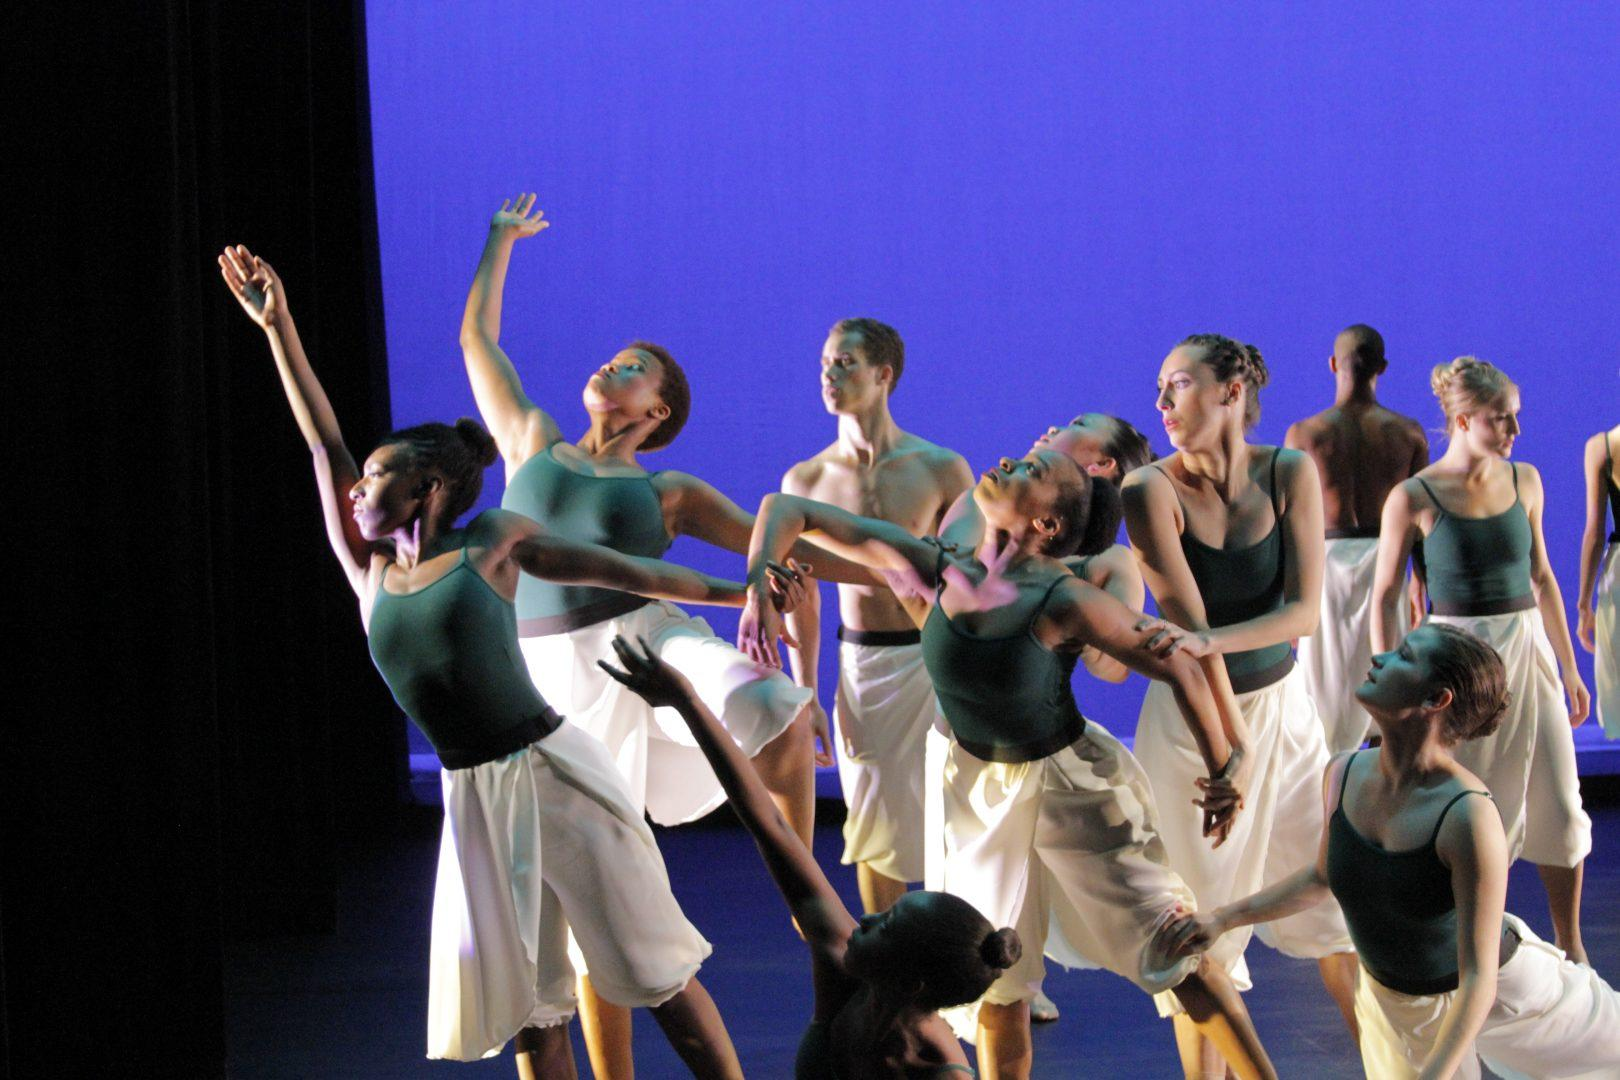 Ailey students perform dances of Kanji Segawa, Stefanie Batten Bland, Jacinta Vlach and Norbert De La Cruz III for the Ailey/Fordham B.F.A., in Dance Benefit Concert. (PHOTO BY JUSTIN REBOLLO/THE OBSERVER)